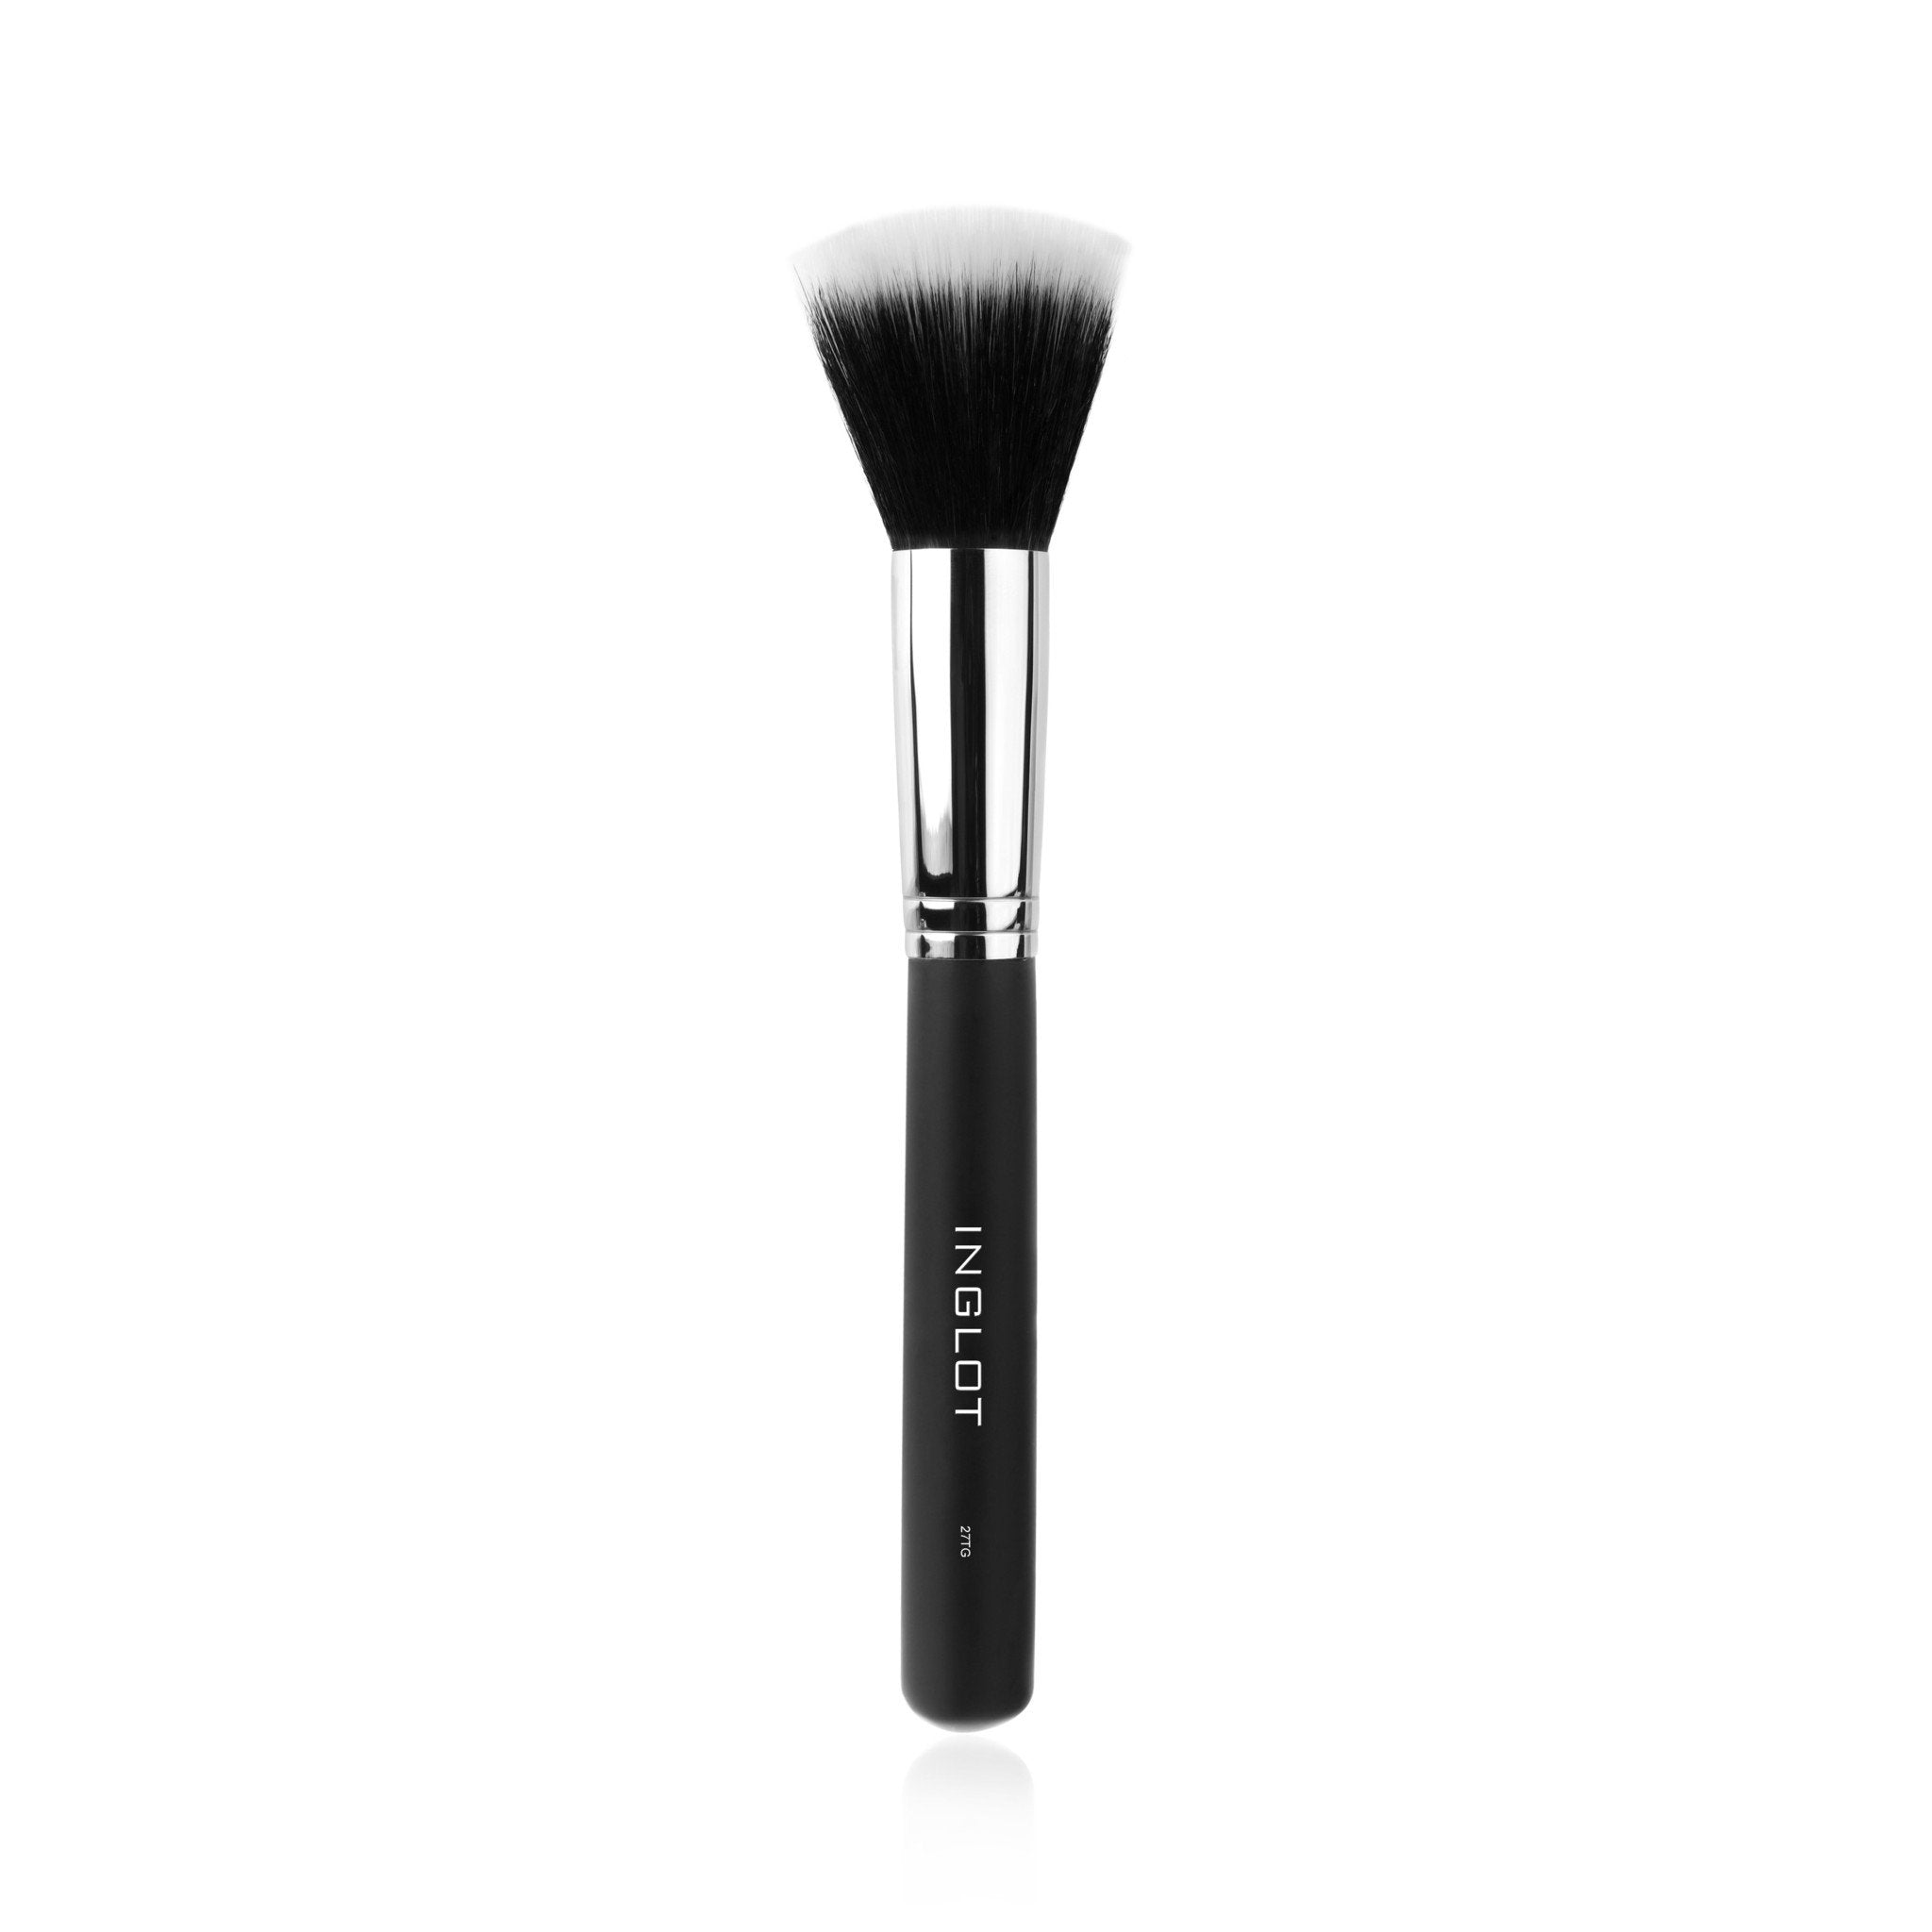 INGLOT - BRUSH 27TG -  - 2